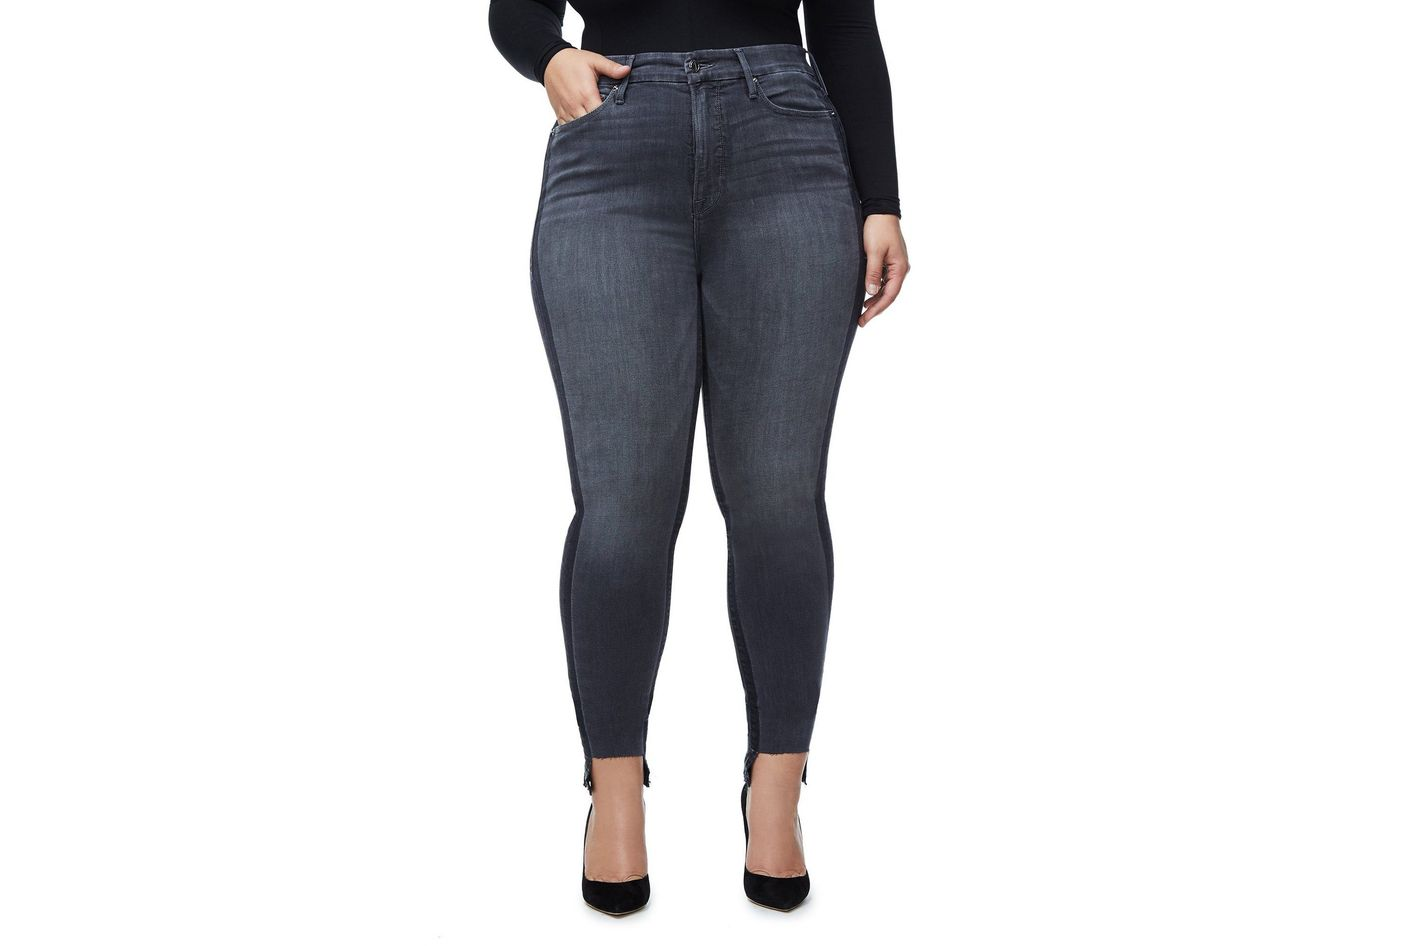 a5cfd7a0997d Best plus-size jeans for petite women. Good American Good Legs Shadow  Tunnel Hem